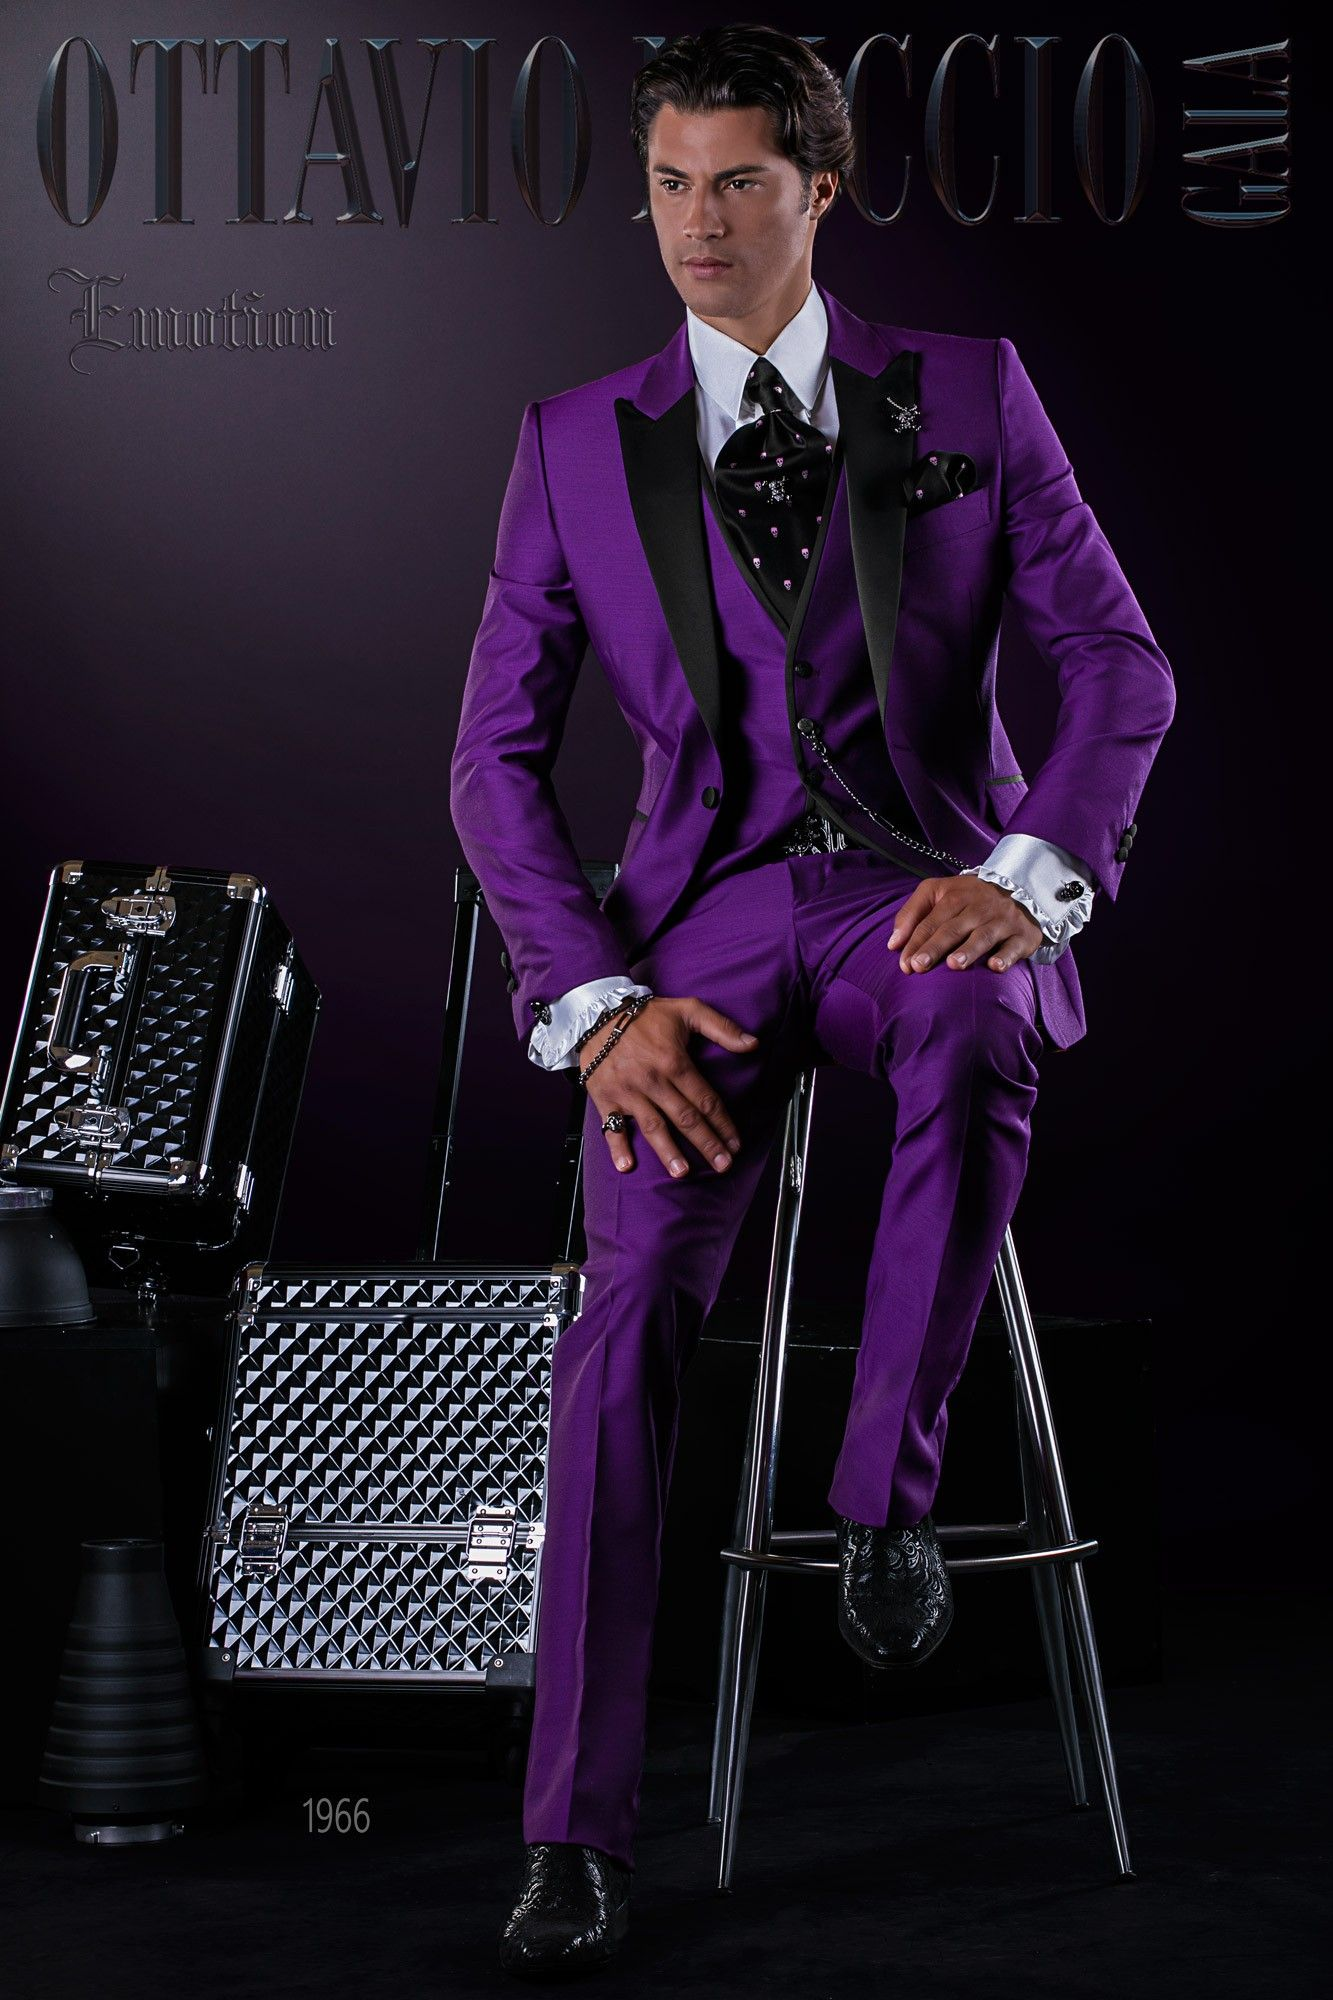 8150eea28c0a8b Fashion Italian bespoke purple suit with black satin peak lapel, 1 button  and matching waistcoat. Wool mix fabric. Fashion suit 1966 Emotion  Collection ...